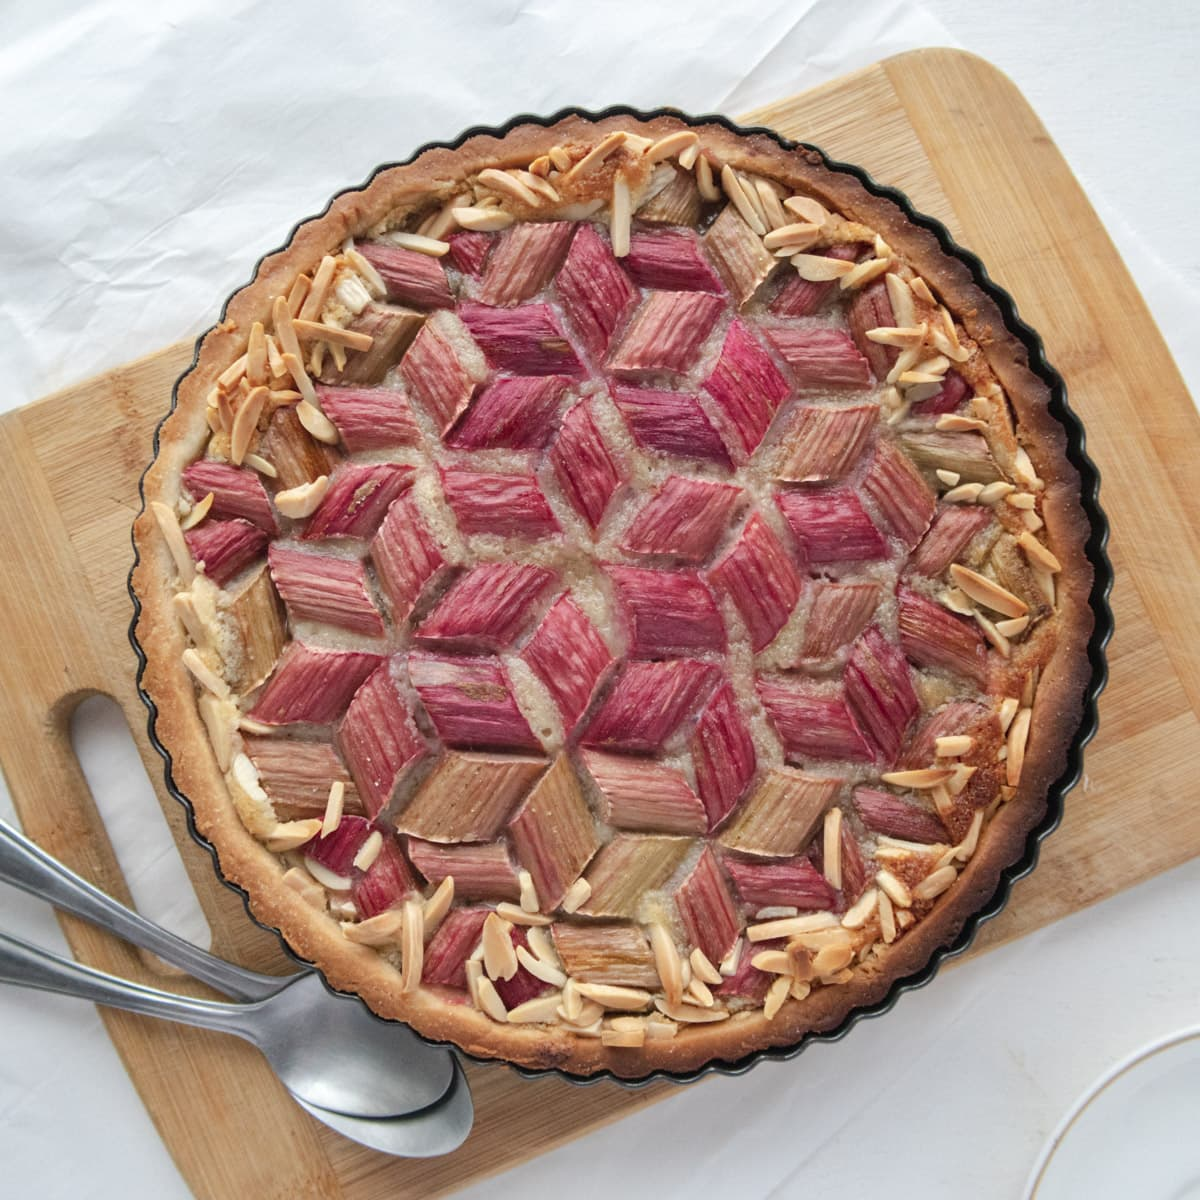 geometric rhubarb tart placed on a cutting board with some spoons